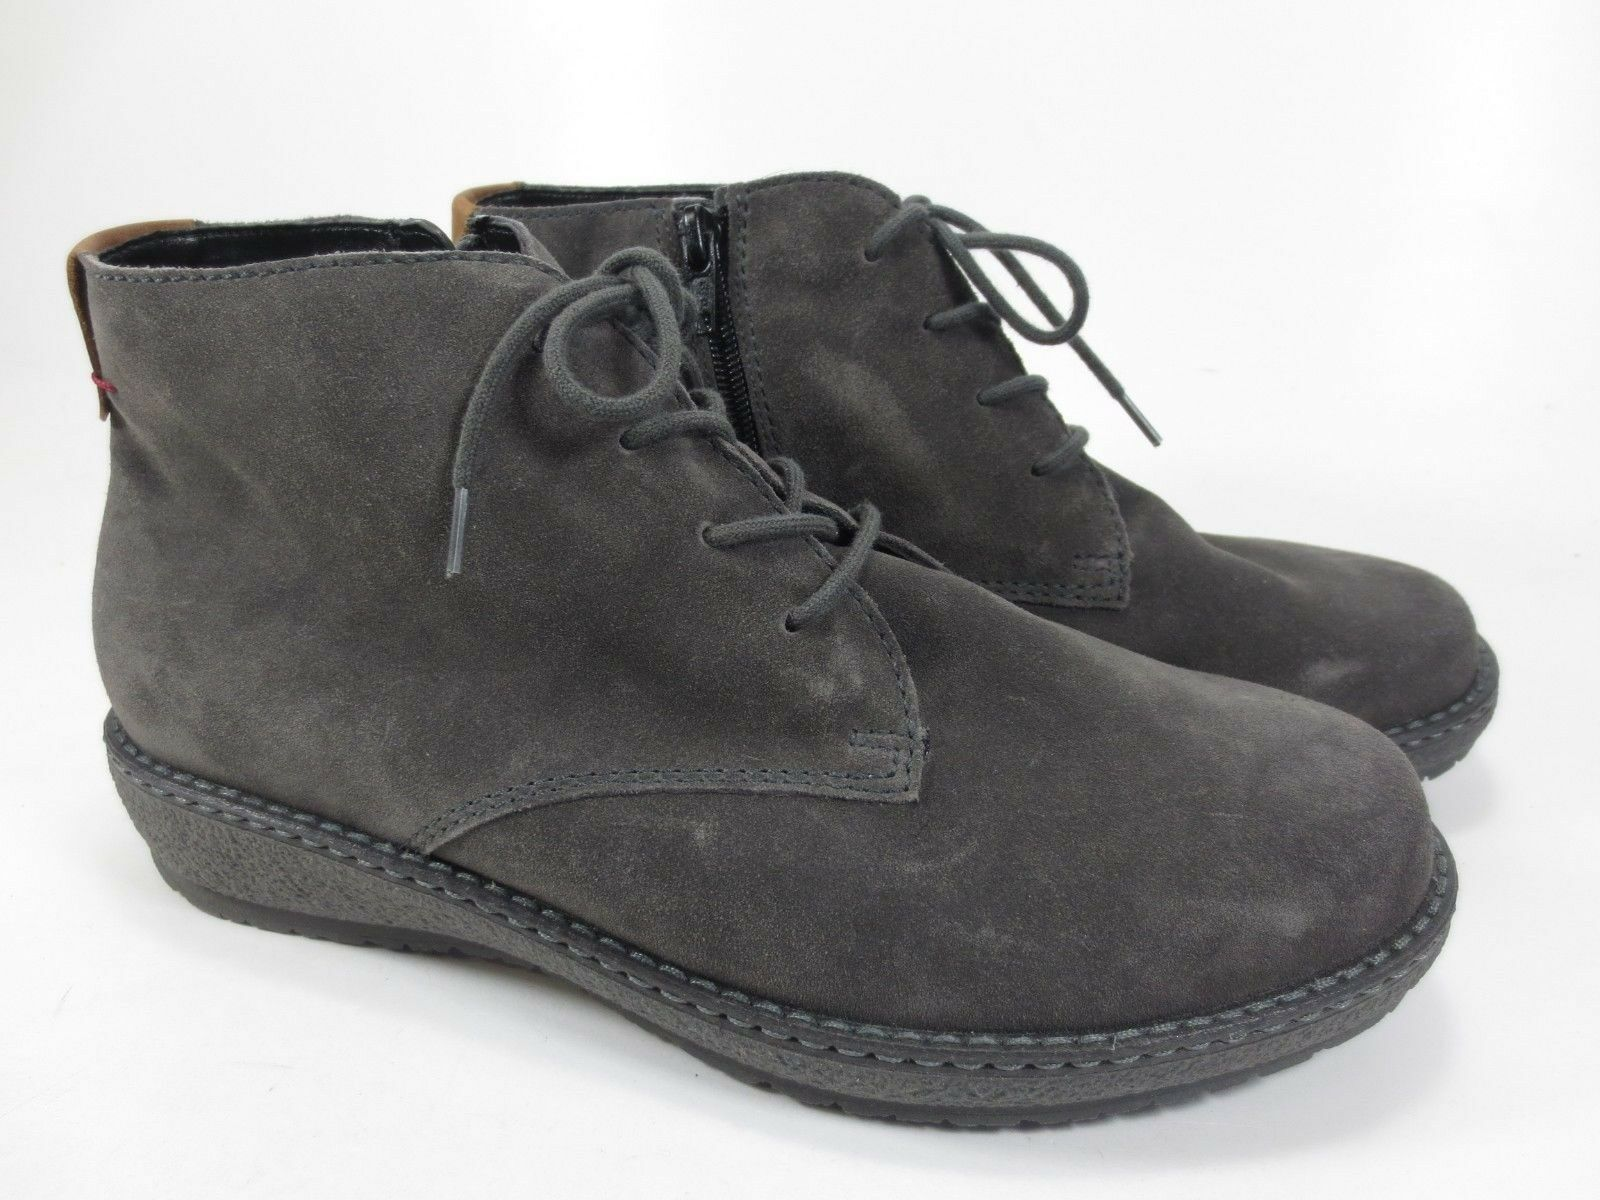 Ranger Hoja Leather shoes Ankle Boots Boots Warm Grey Size 37,5 UK 4,5 H 222